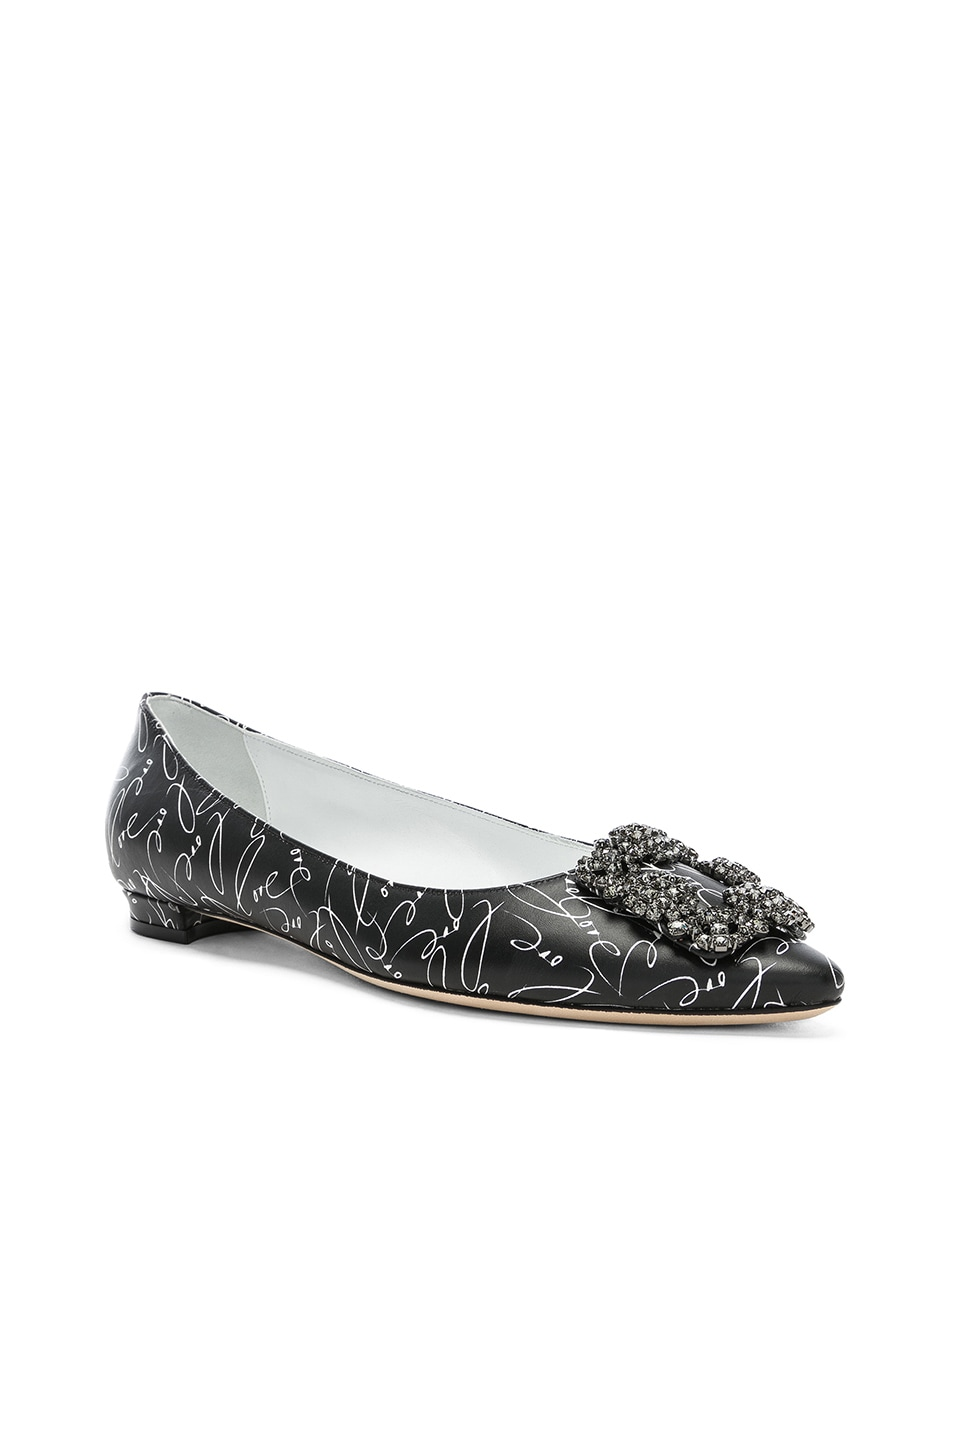 Image 2 of Manolo Blahnik A Decade of Love Hangisi Flat in Black